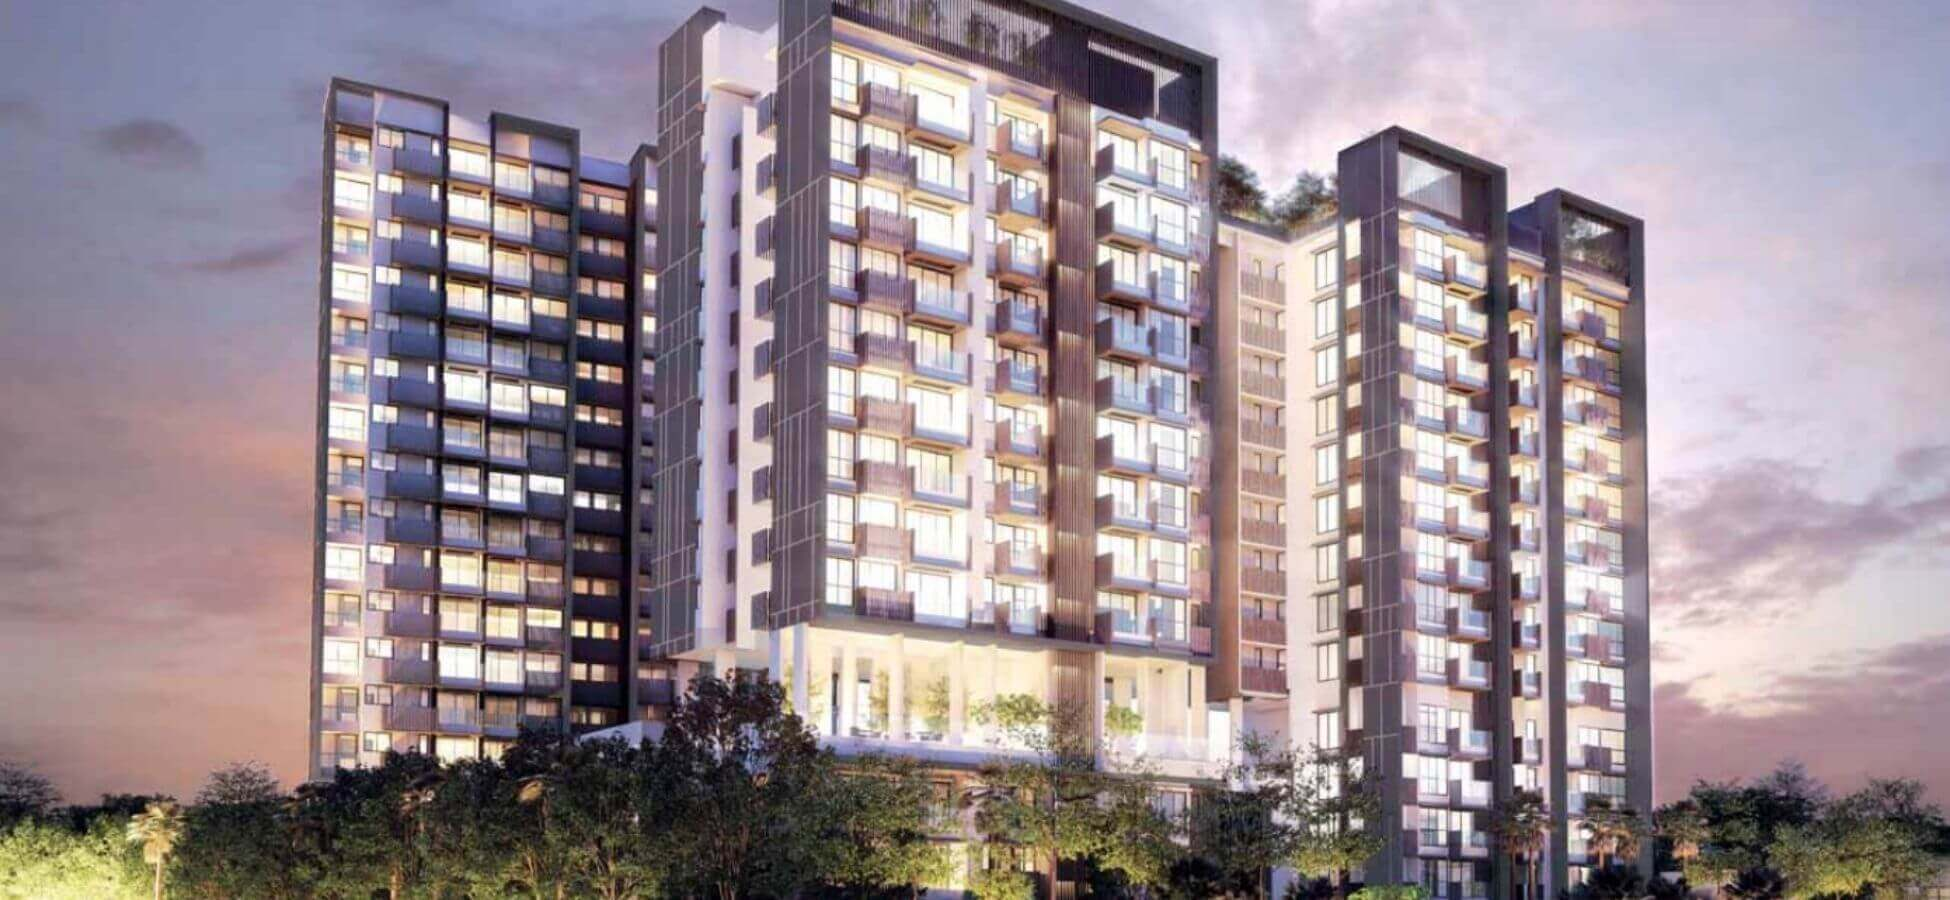 <span>Trilive</span> is a Freehold<br>D19 Development